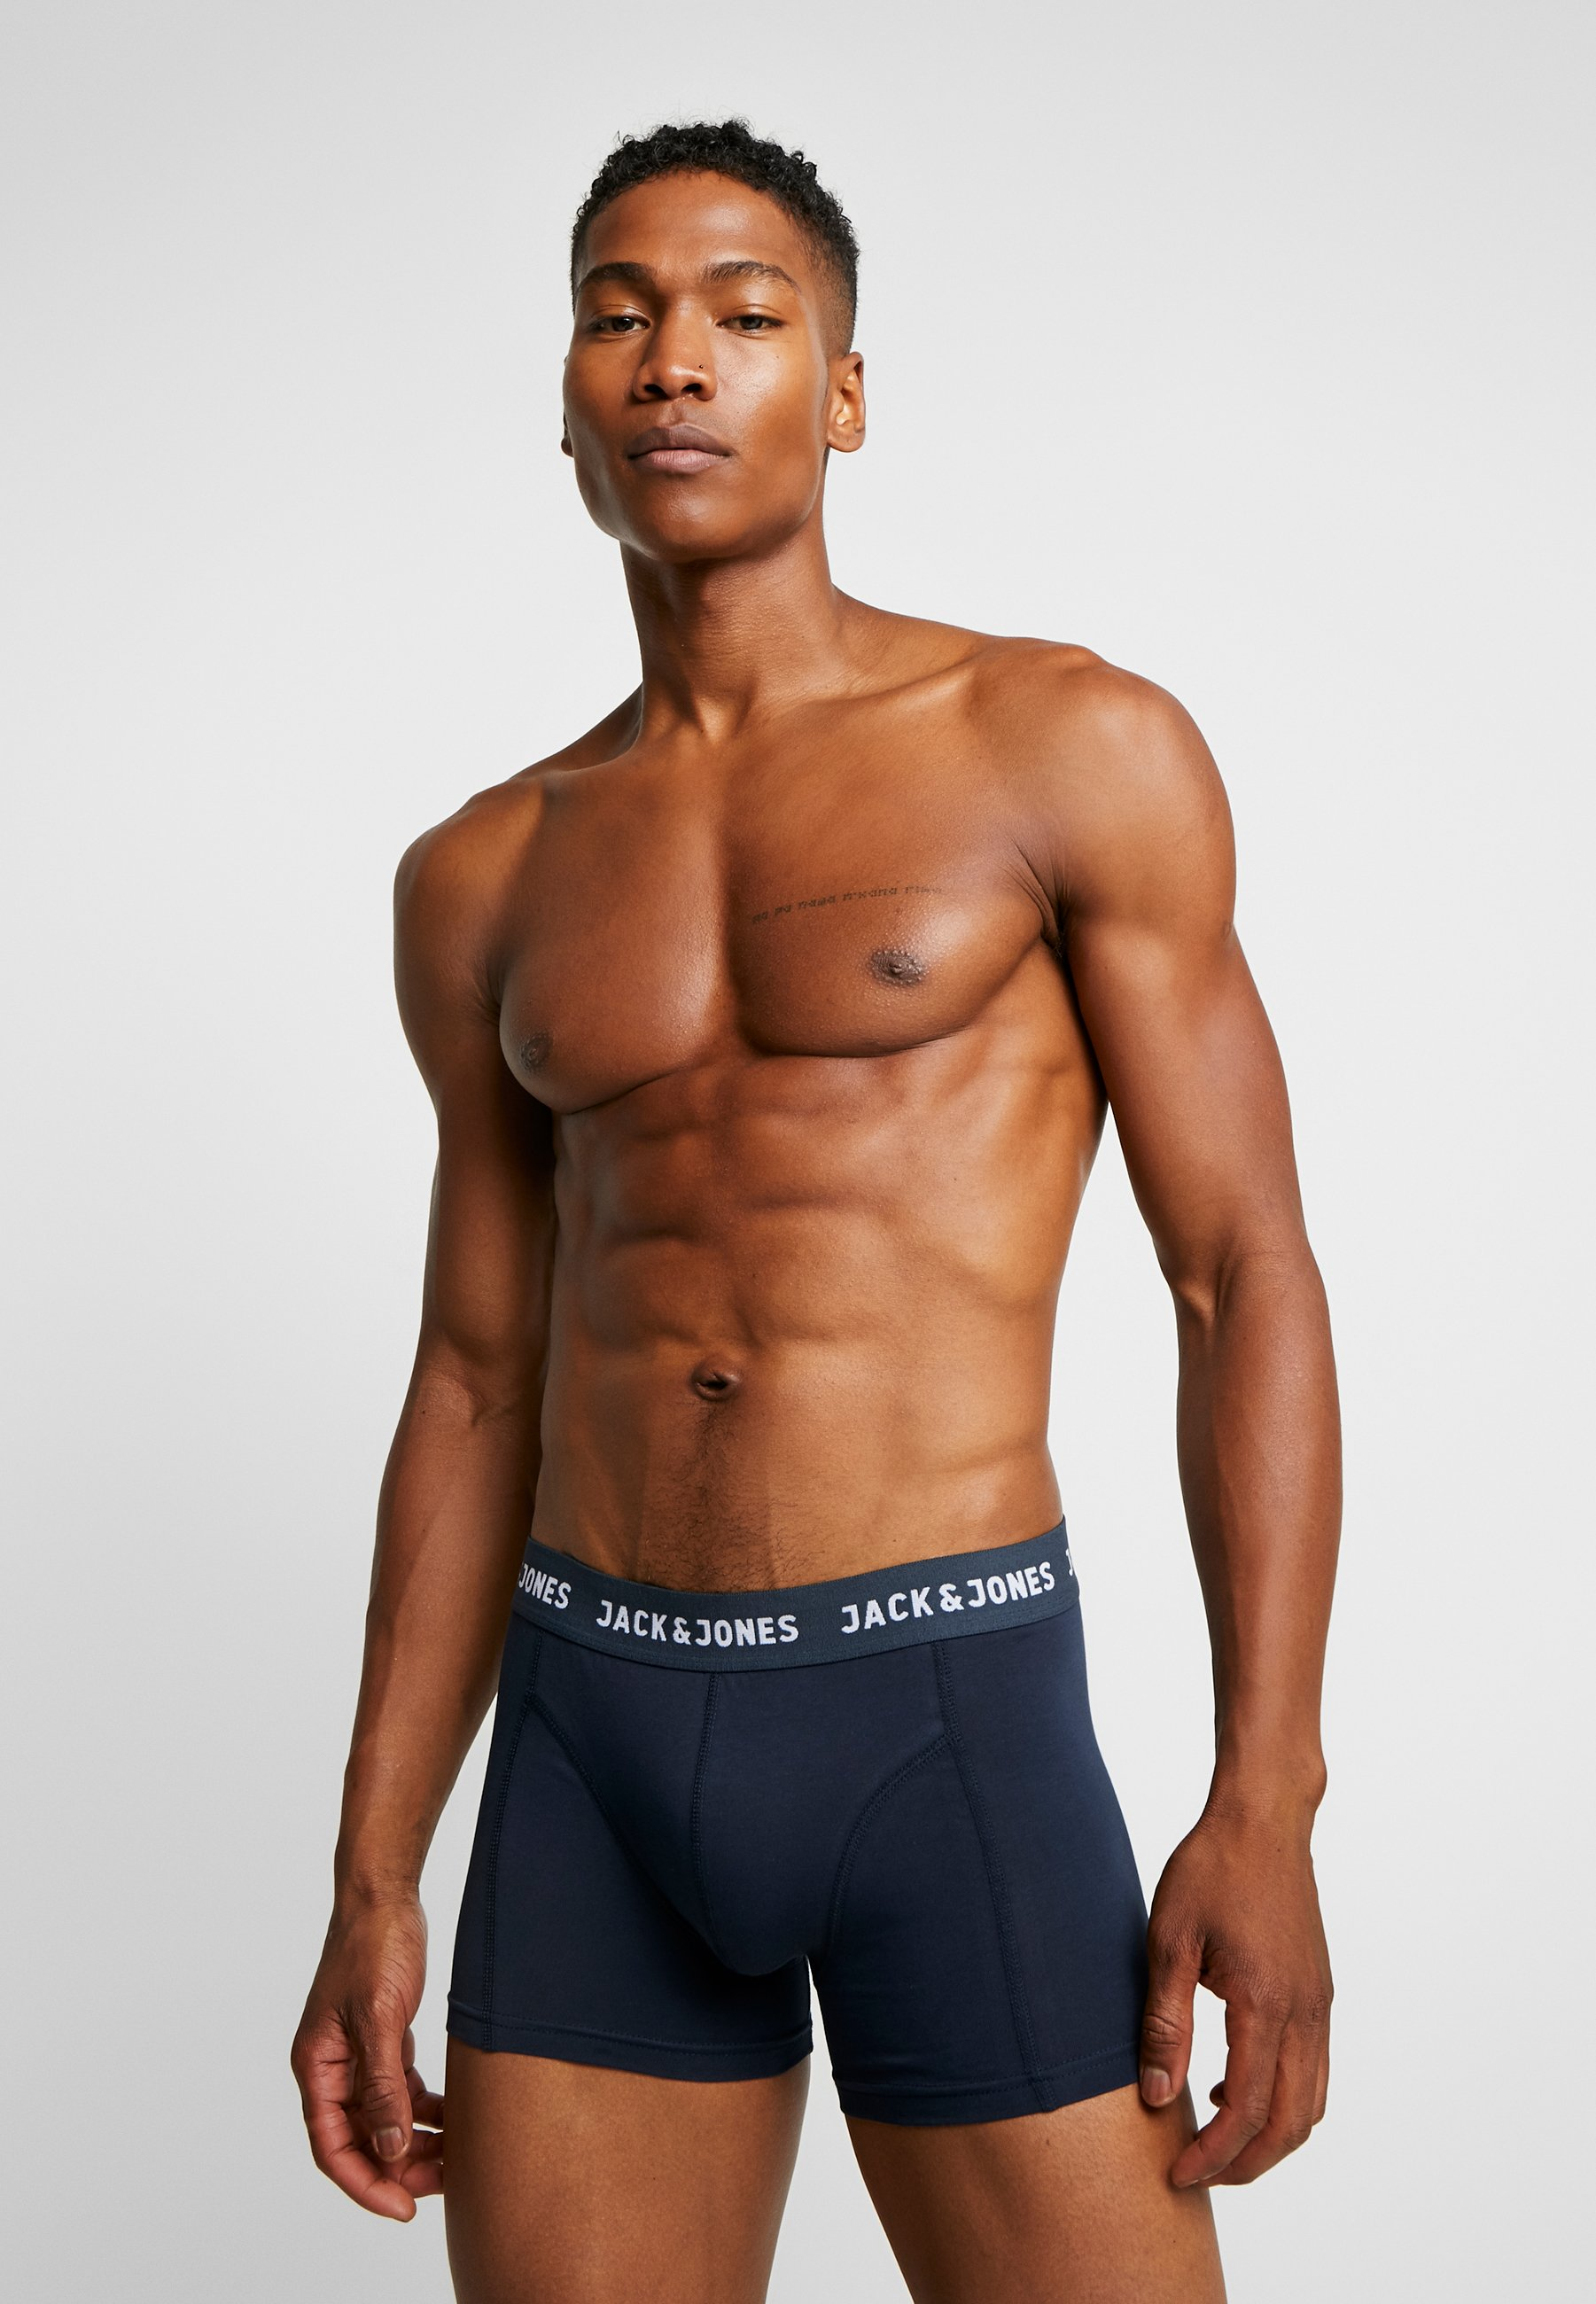 Jack & Jones Jacanthony Trunks 3pack - Culotte Blue Nights